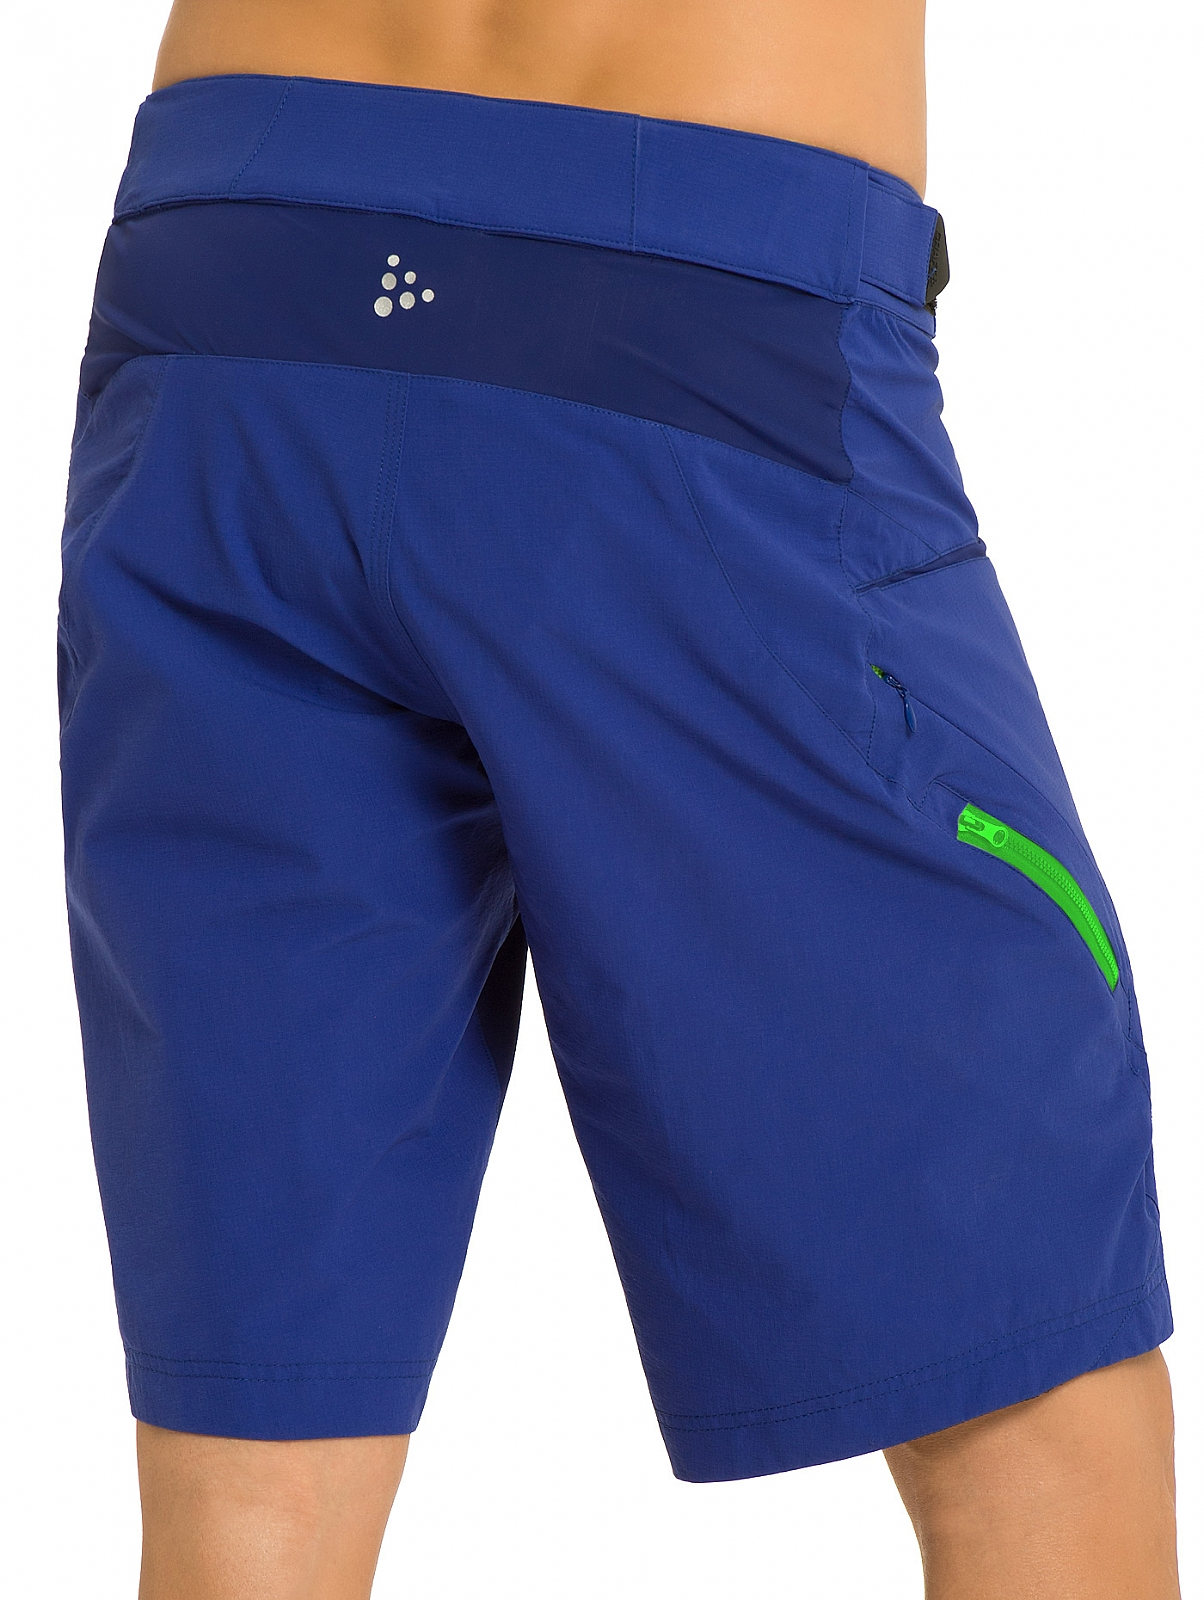 https://i1.wp.com/www.craft-sports.de/out/pictures/generated/product/2/1300_1600_100/Craft-Path-Bike-Loose-Fit-Shorts-blau-1900683-2344.jpg